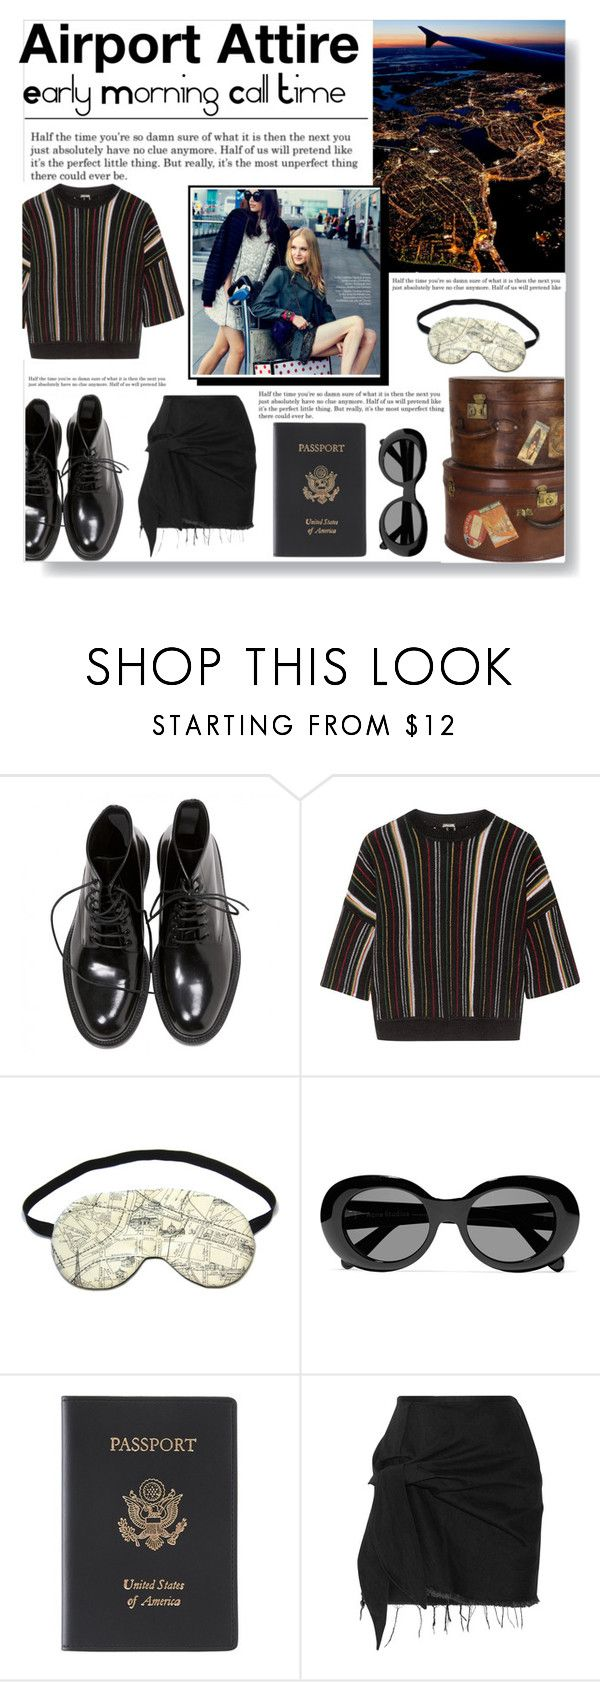 """Airport Attire"" by bella-dawson ❤ liked on Polyvore featuring Levi's, Yves Saint Laurent, ADAM, Acne Studios, Royce Leather, Marques'Almeida, airportstyle, polyvoreeditorial, polyvorecontest and polyvorefashion"